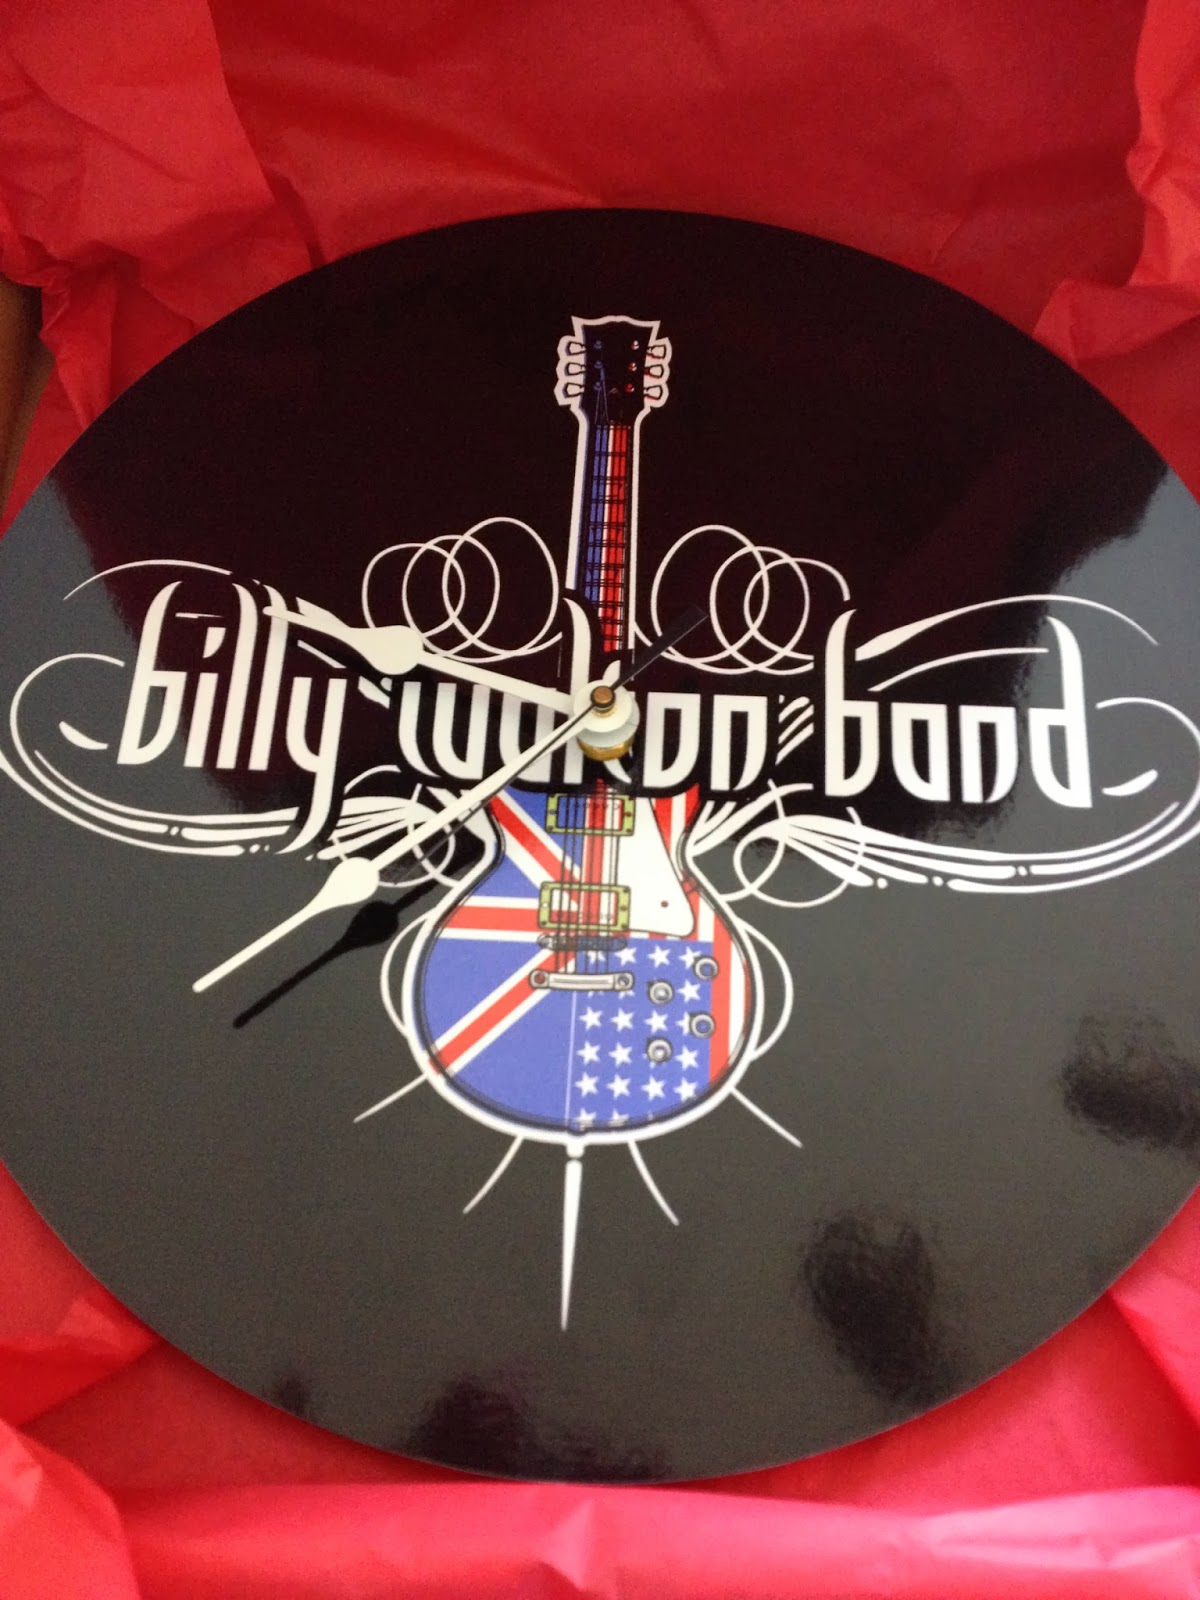 Support the Billy Walton Band